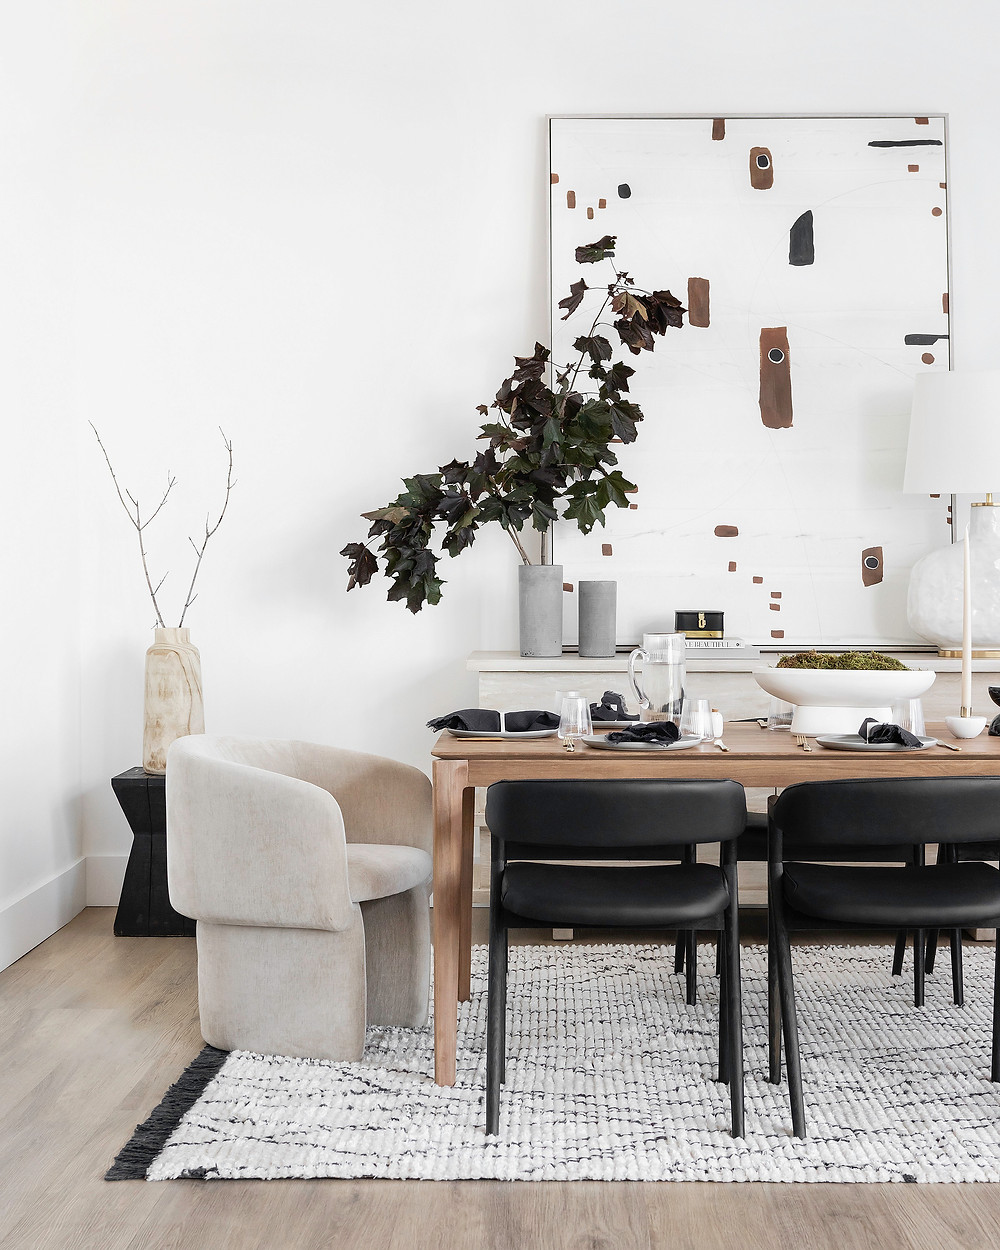 Mid century modern dining room with curved arm chairs and textured rug.